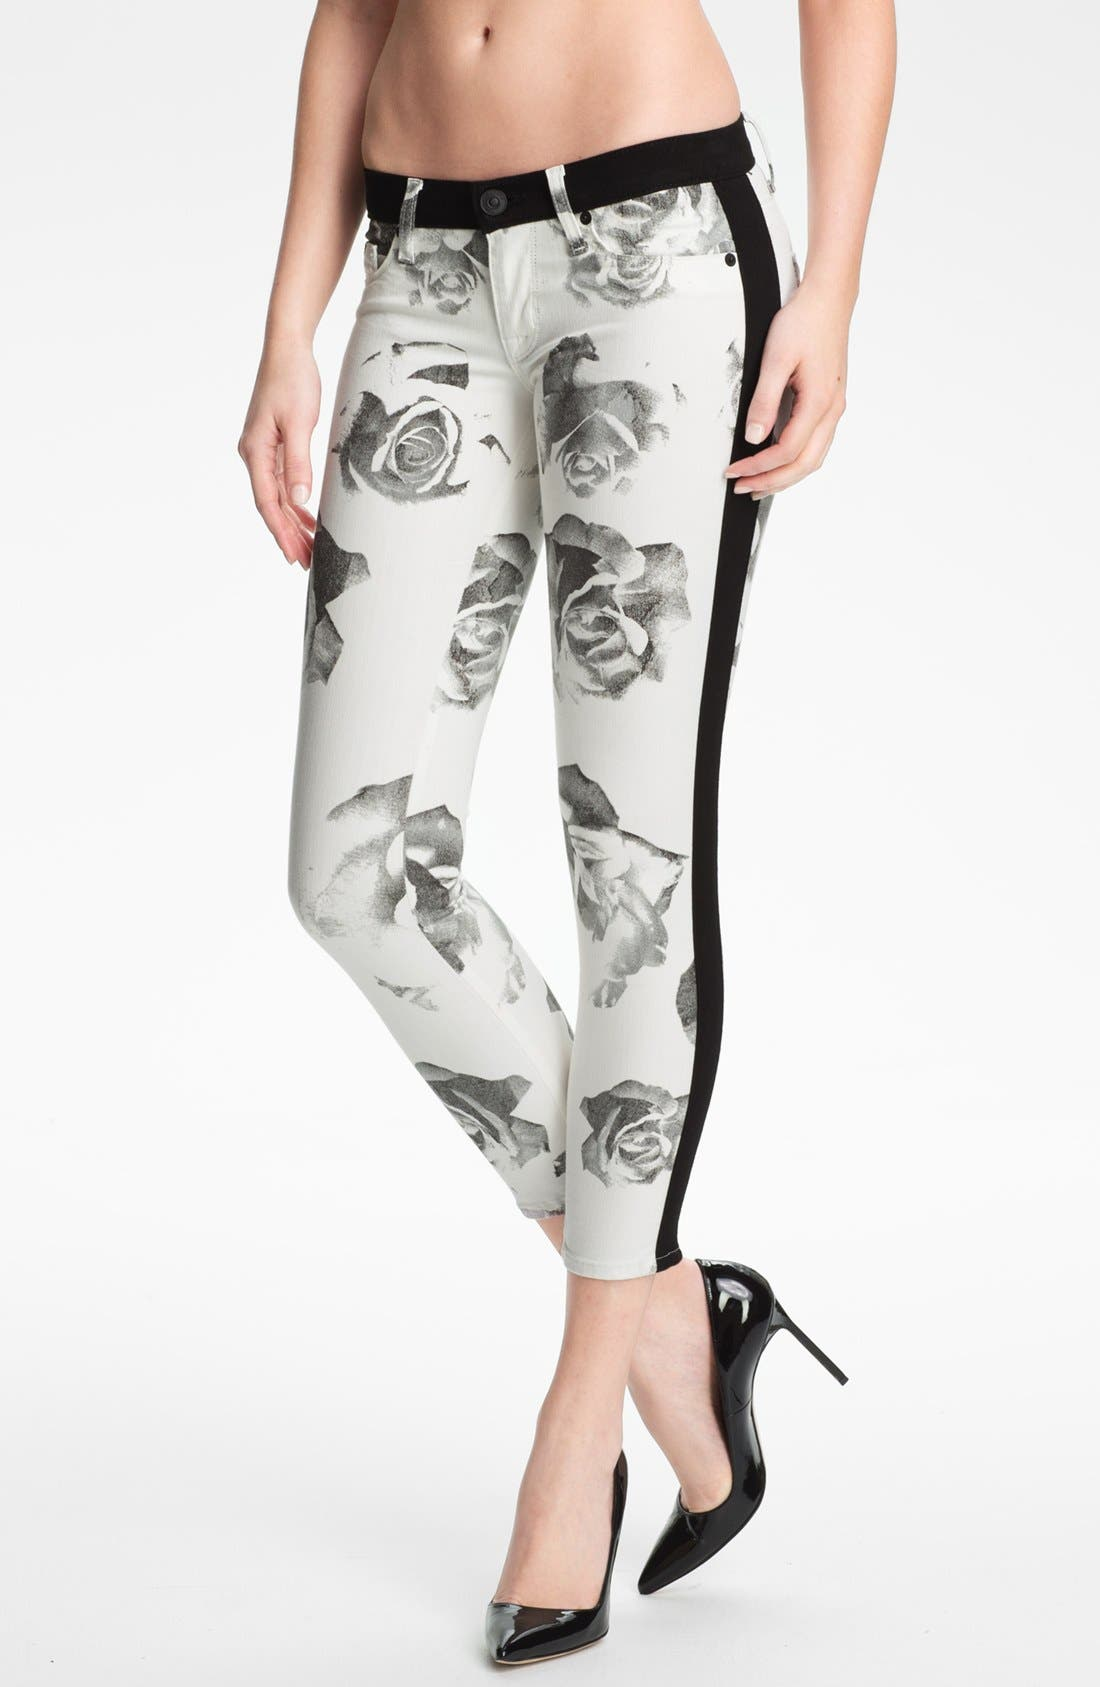 Alternate Image 1 Selected - Hudson Jeans 'Leeloo' Colorblock Crop Skinny Jeans (Black/White Floral)